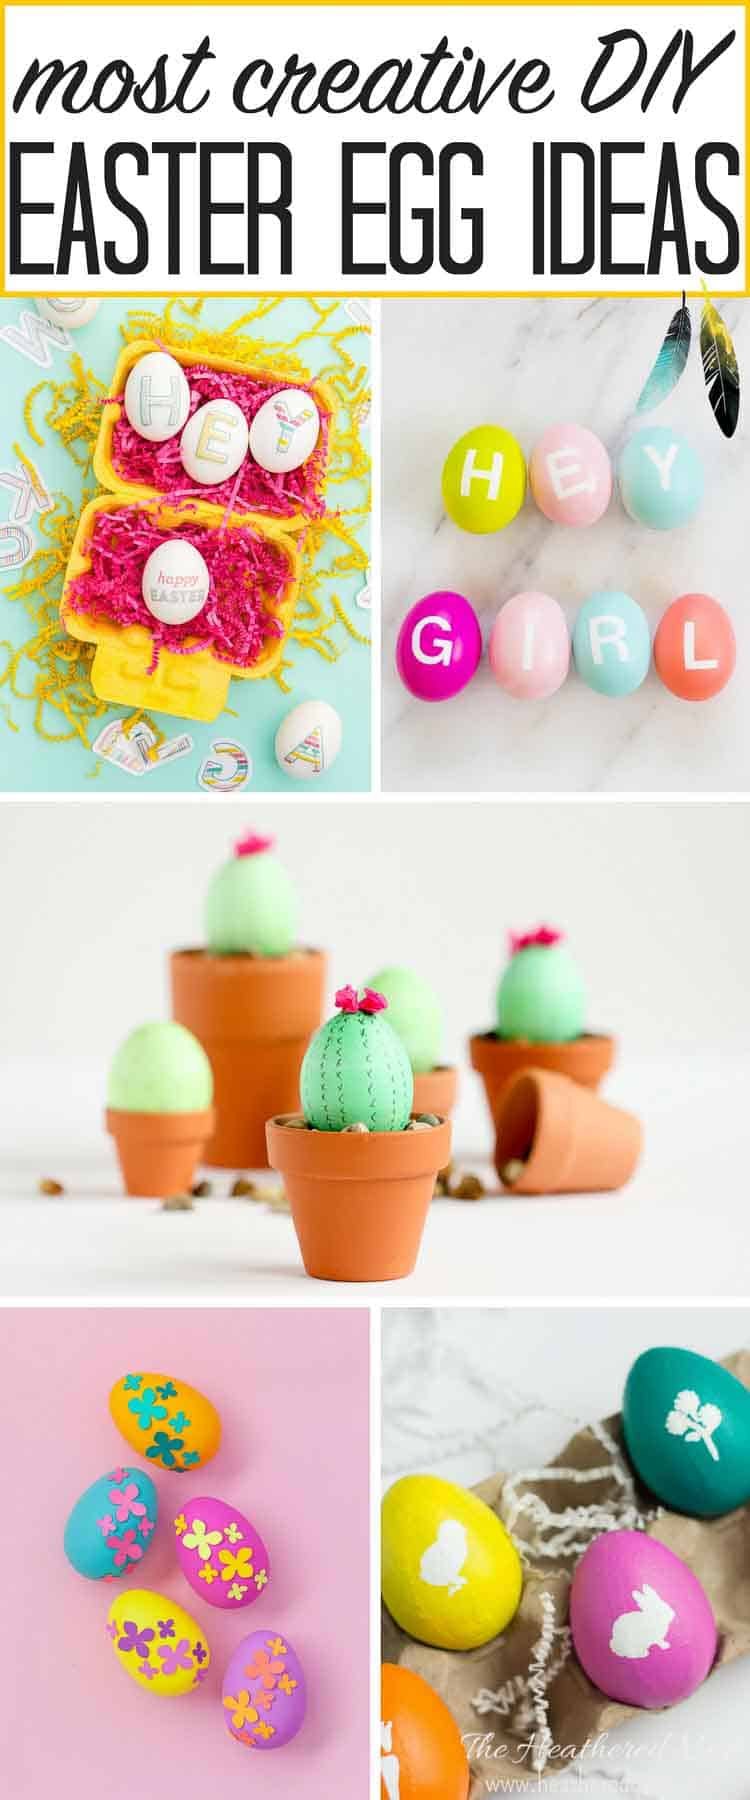 We've collected the most creative DIY Easter egg ideas on the net! I LOVE so many of these Easter egg craft ideas! Can't wait to try the photo transfer ones :)